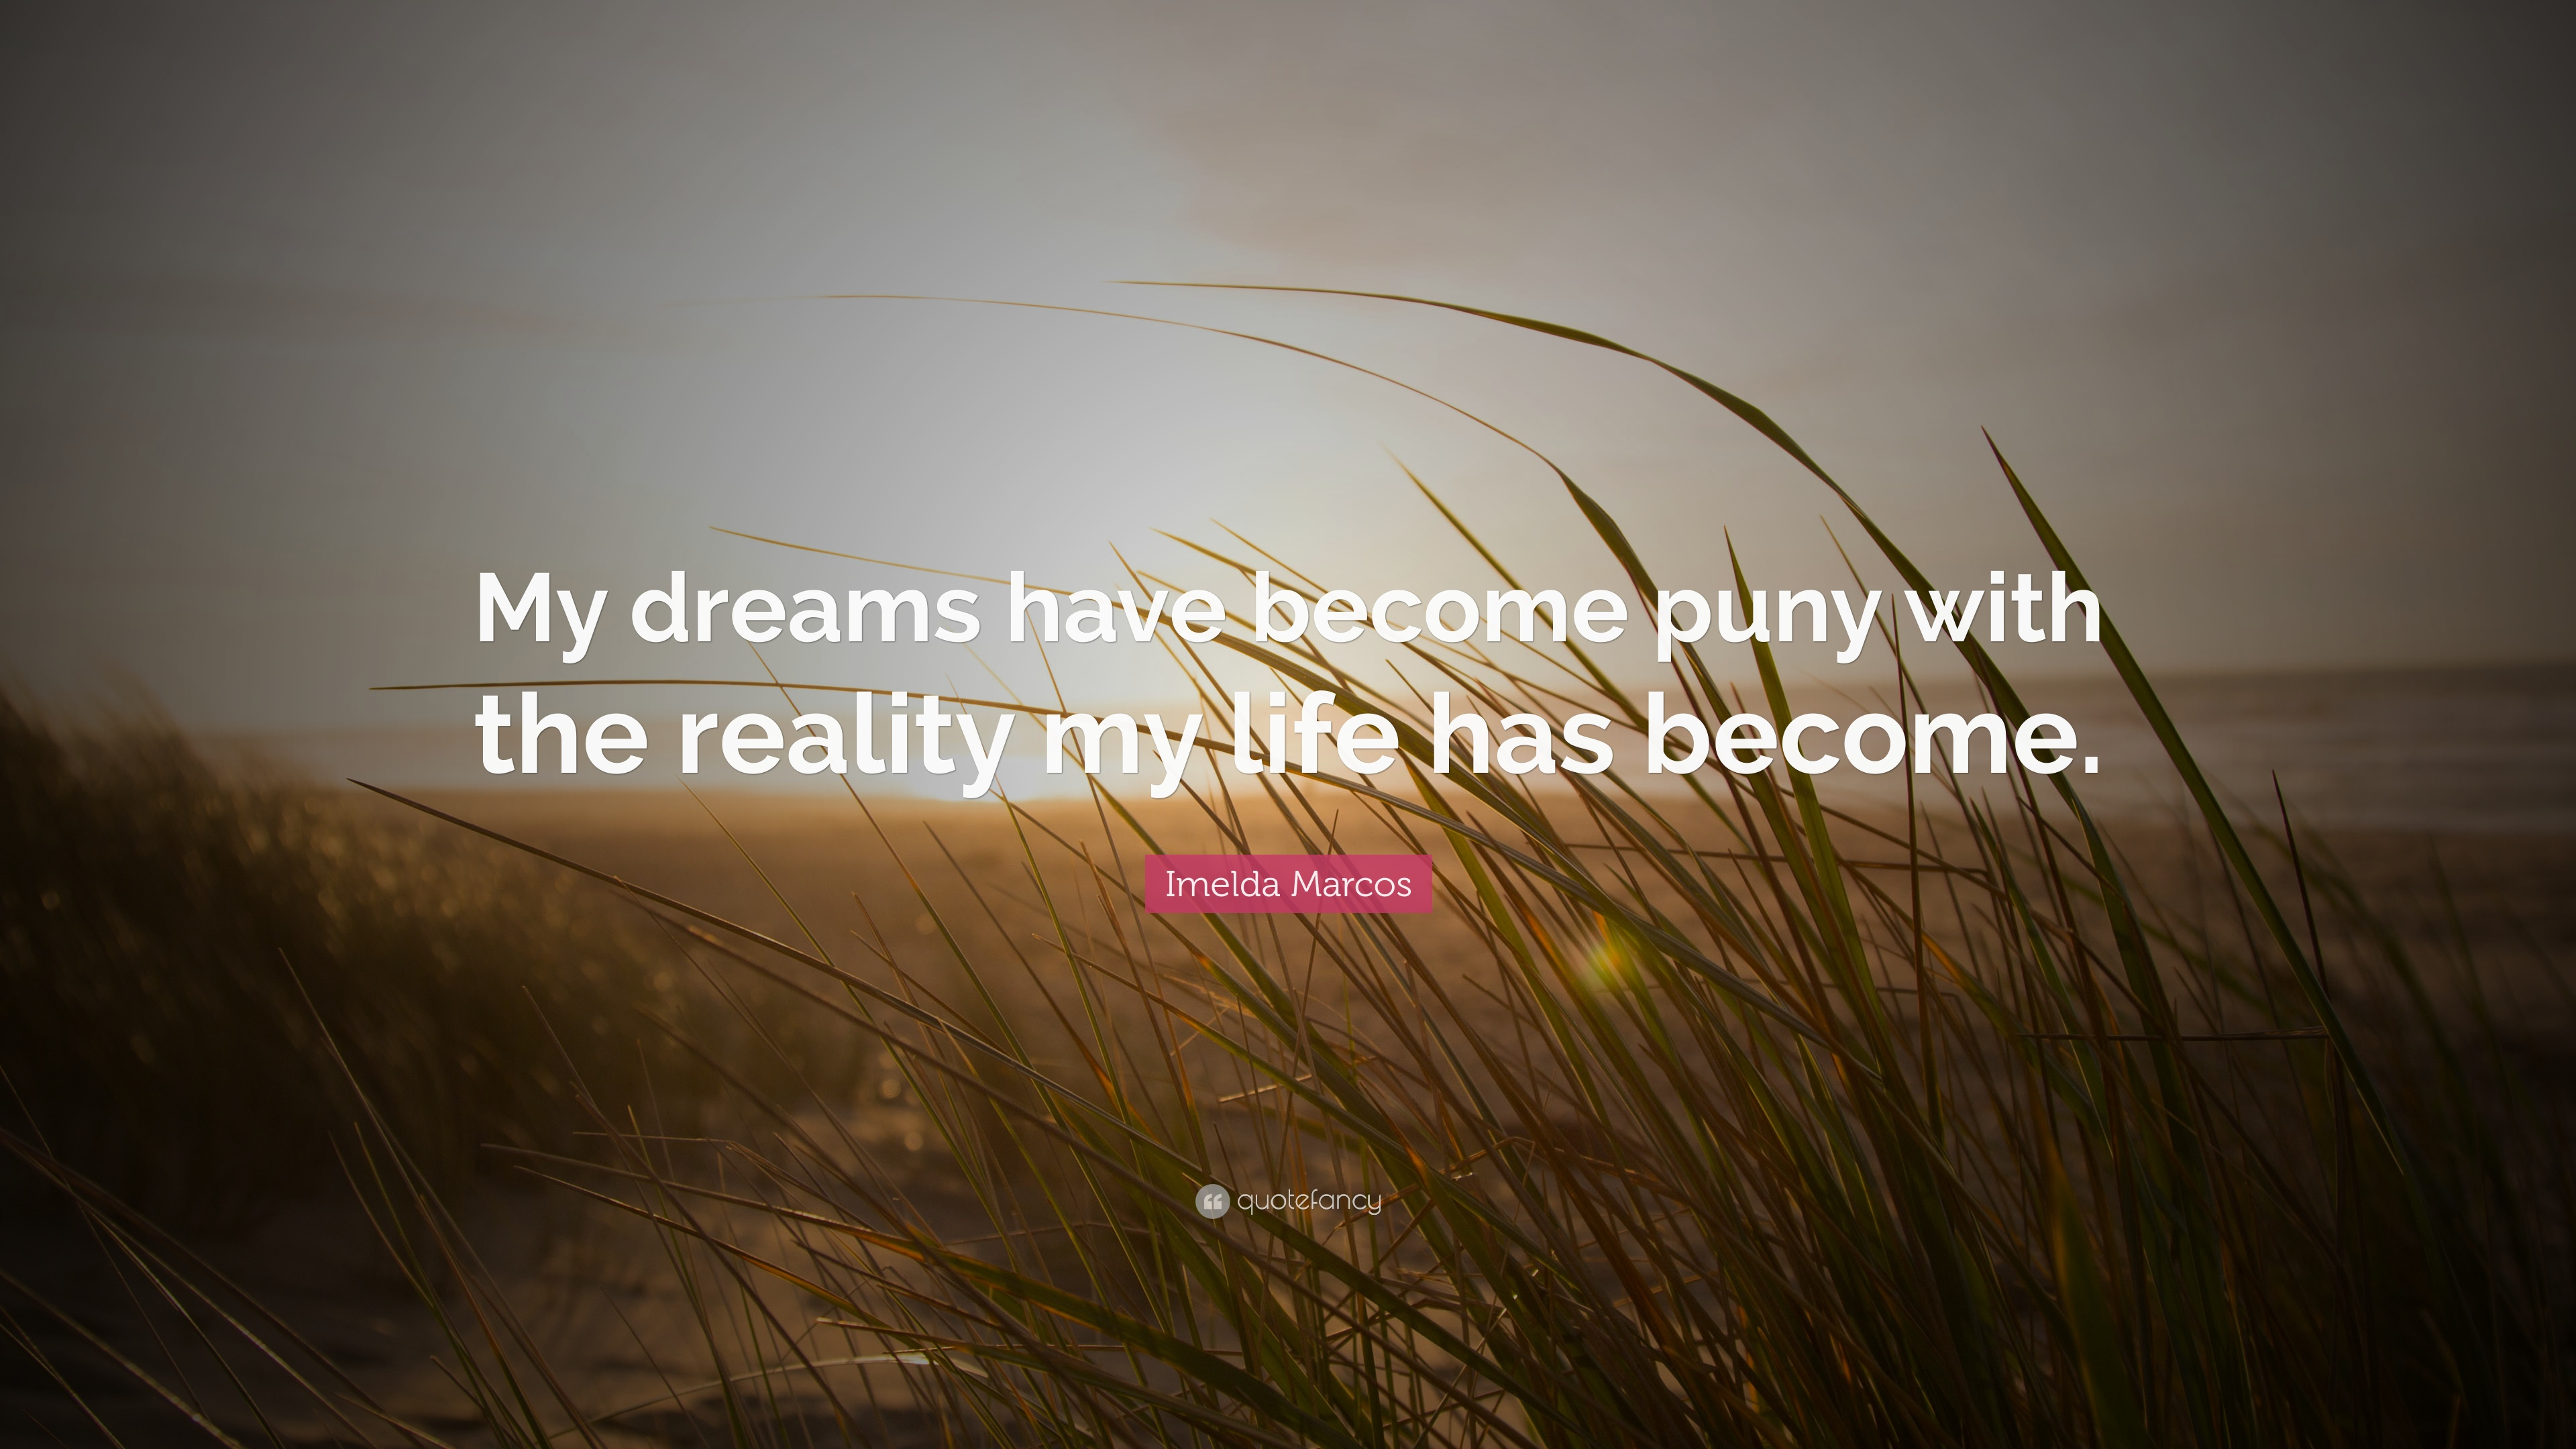 Imelda Marcos Quote My Dreams Have Become Puny With The Reality Life Has